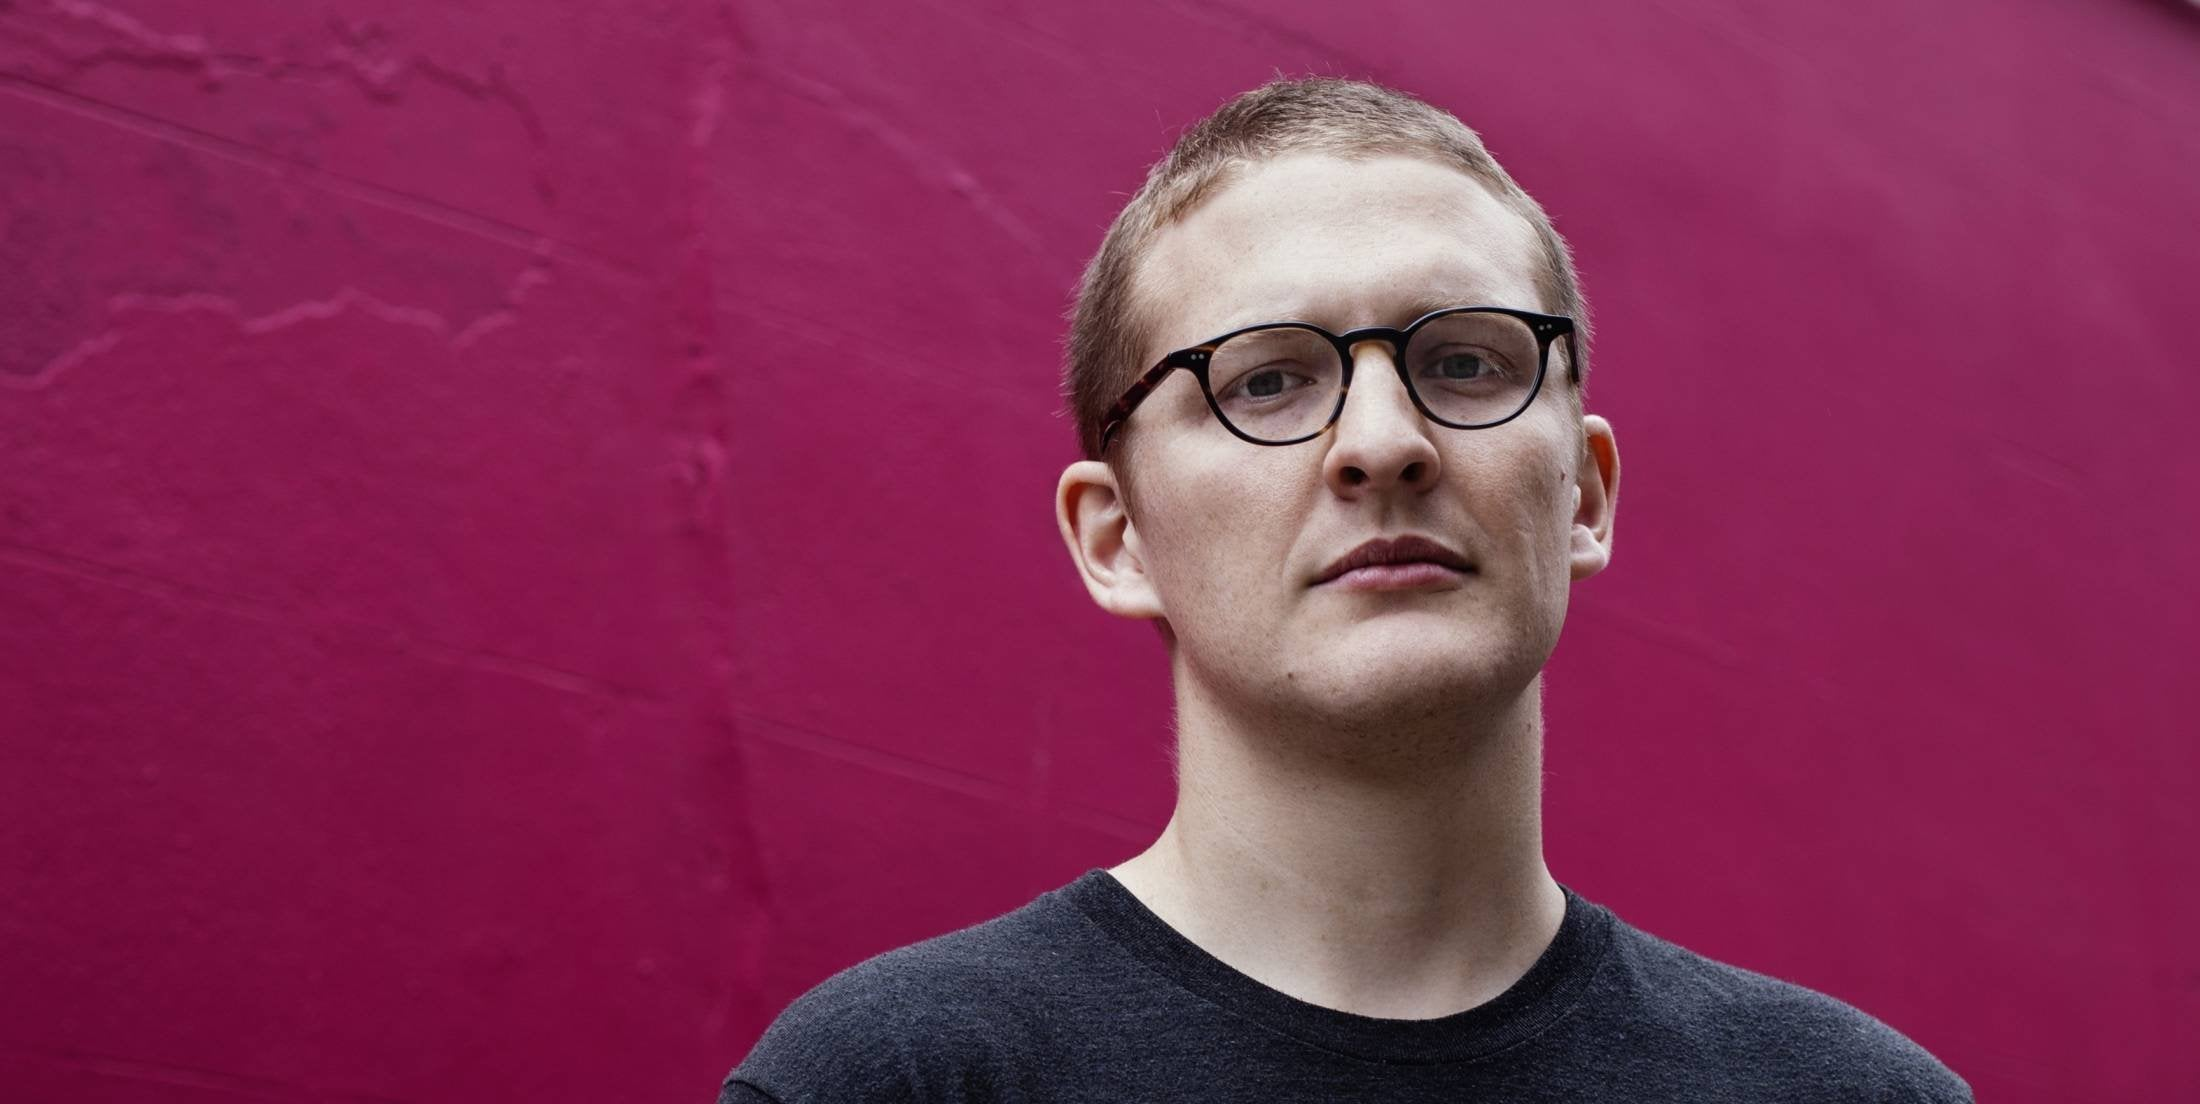 Avoiding The 'Crush' Of Existence With Floating Points